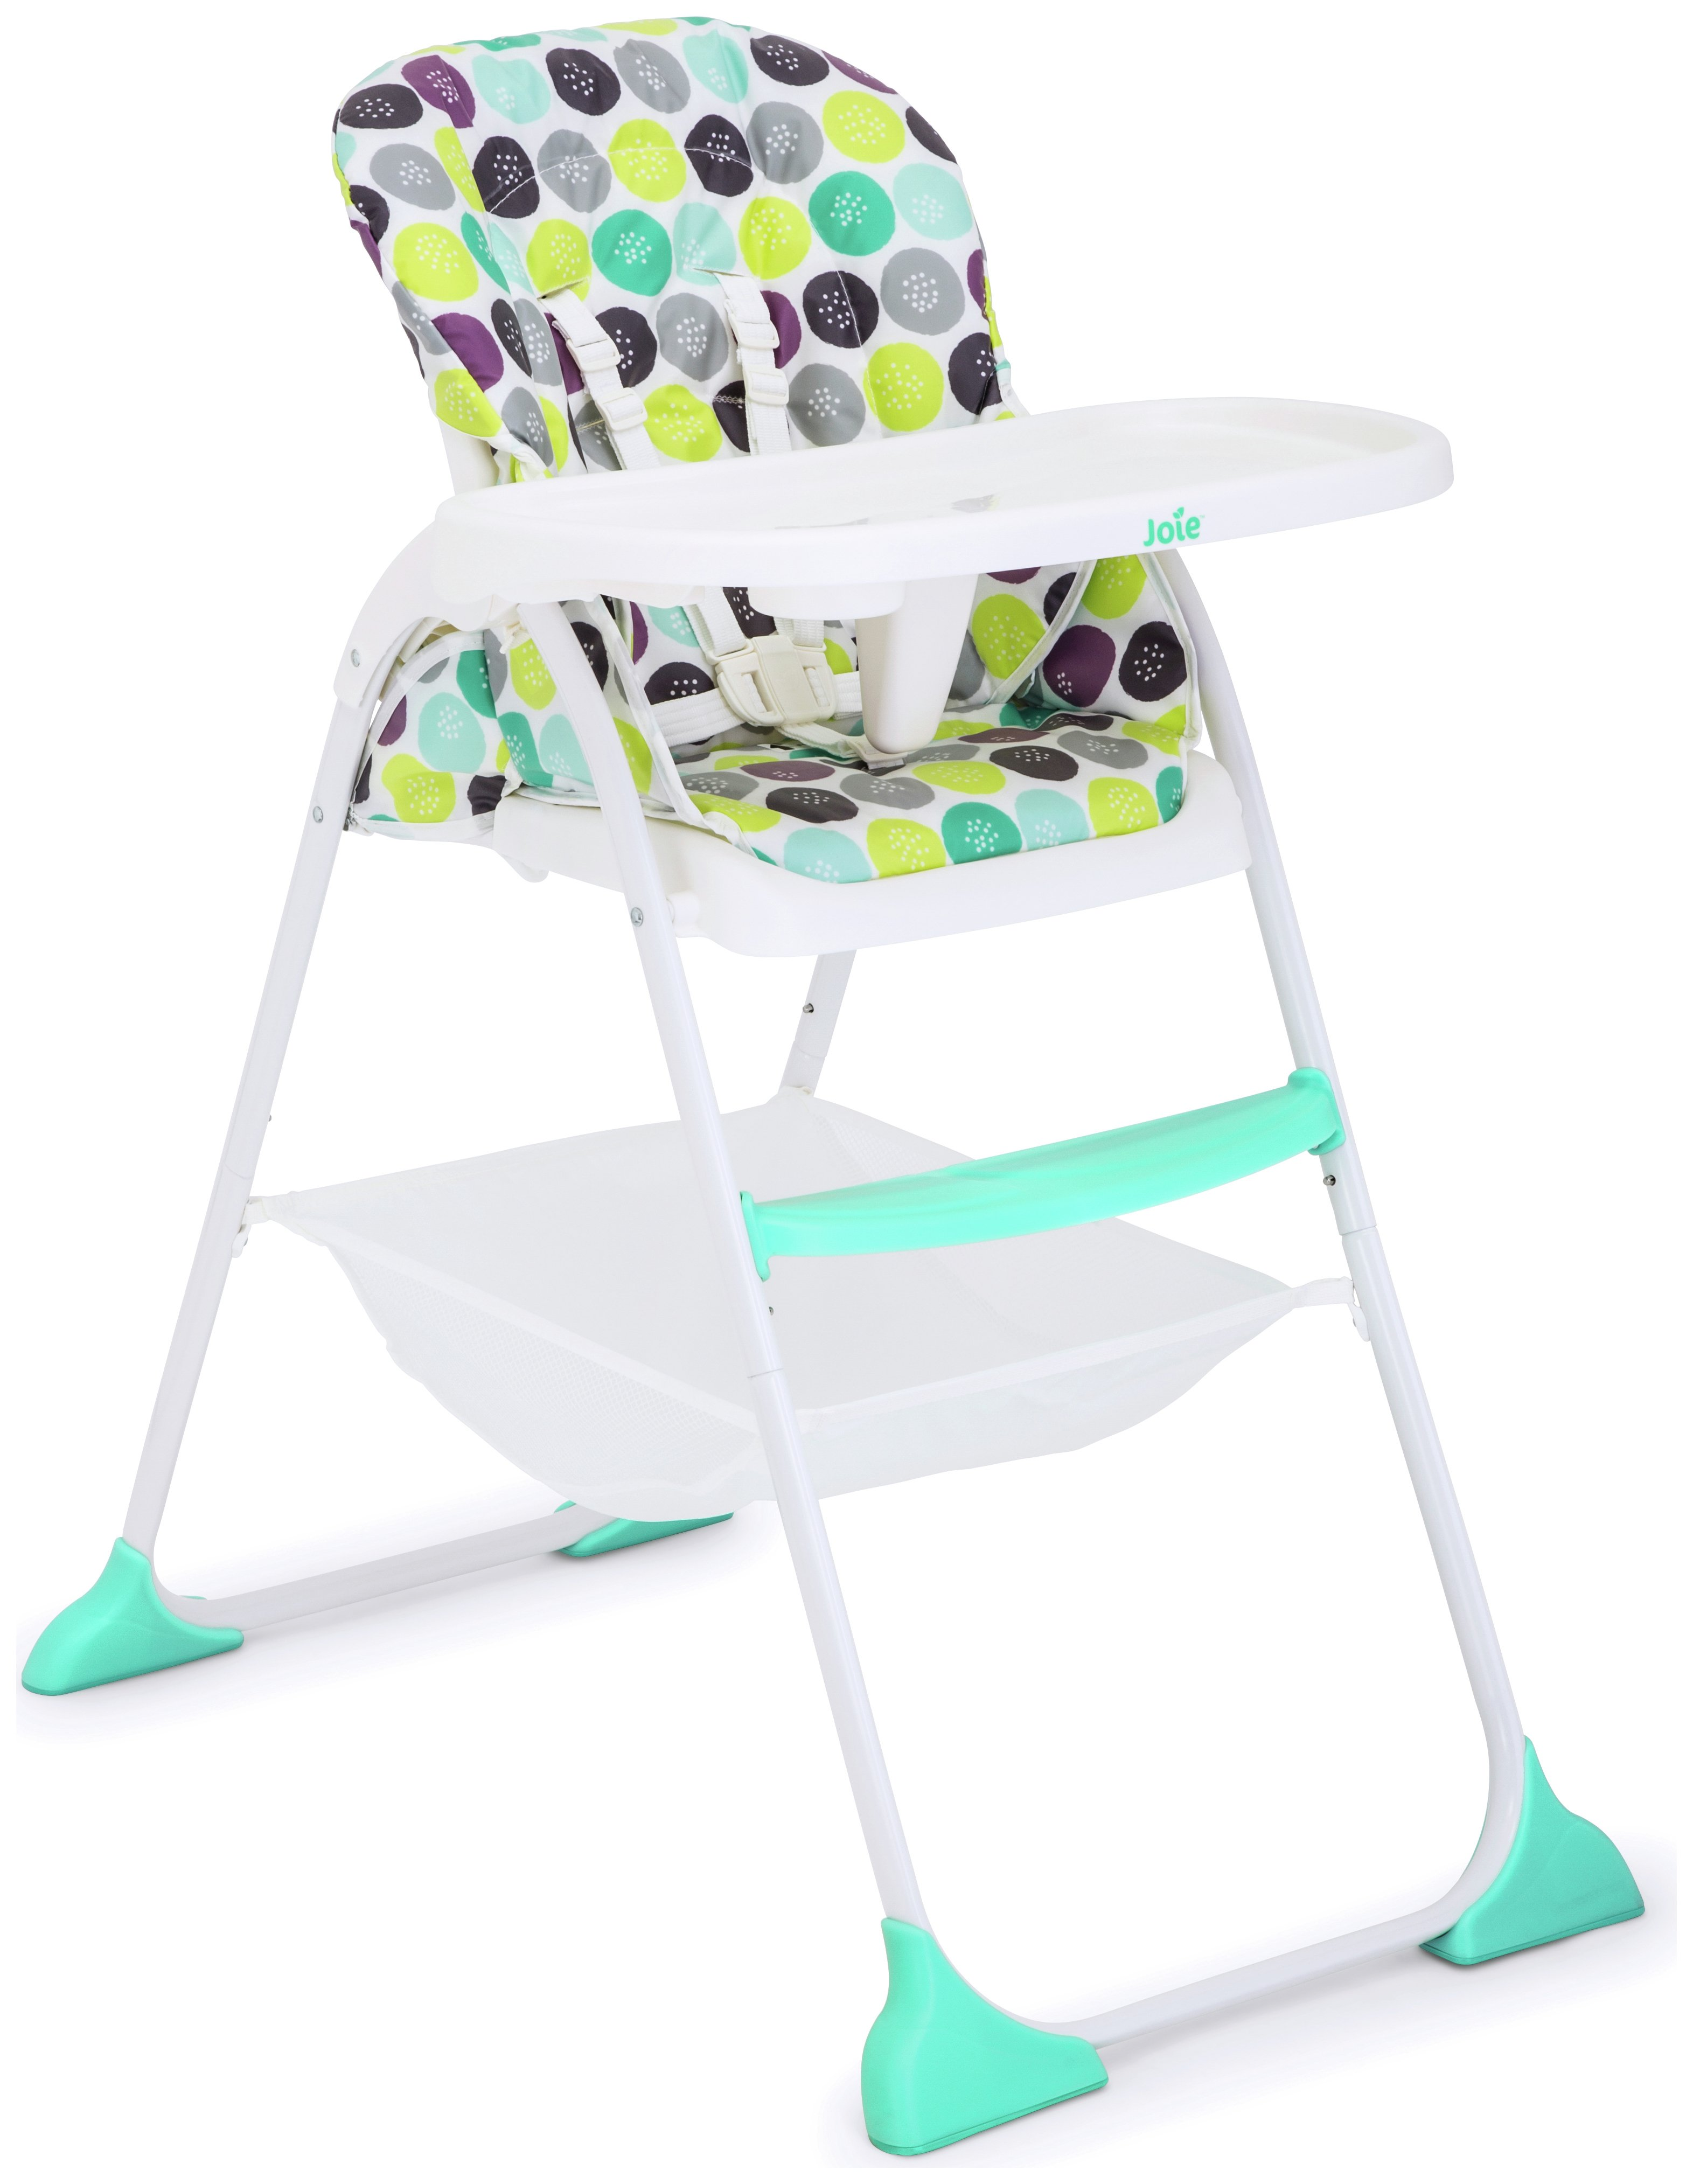 Image of Joie Mimzy Eco - Highchair